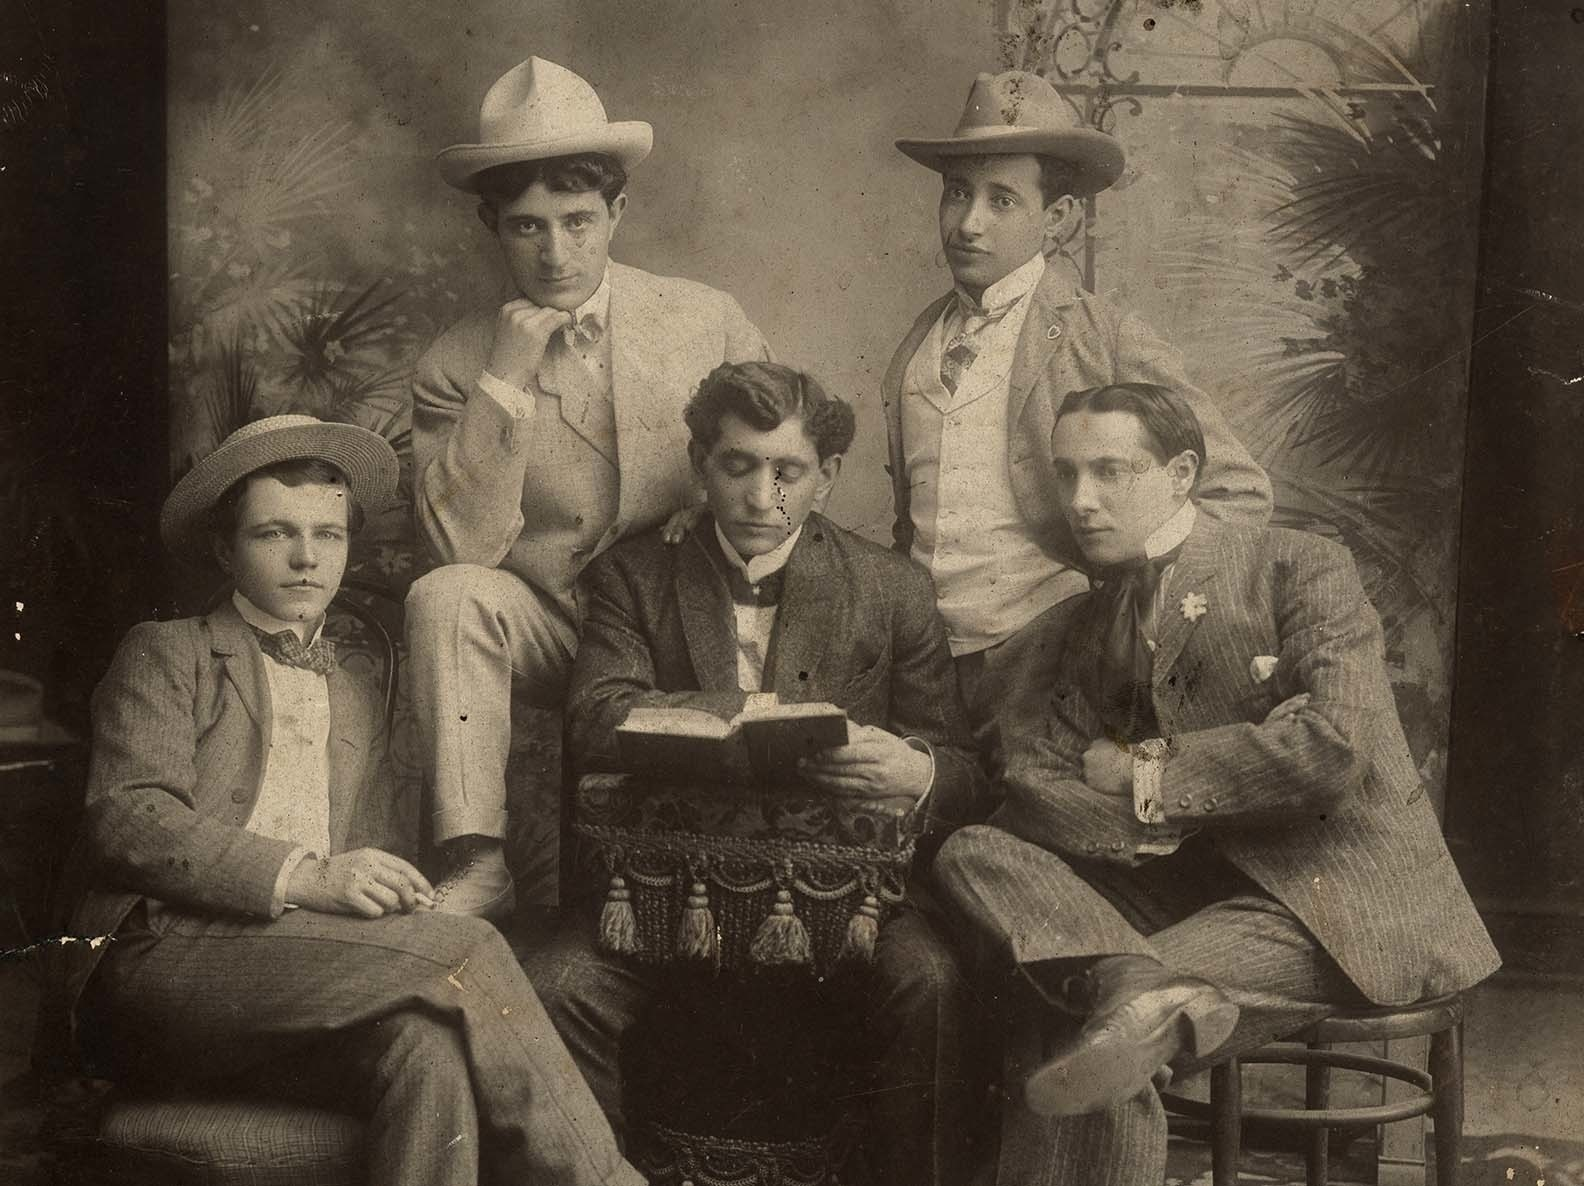 Five male members of an acting troupe circa 1915.